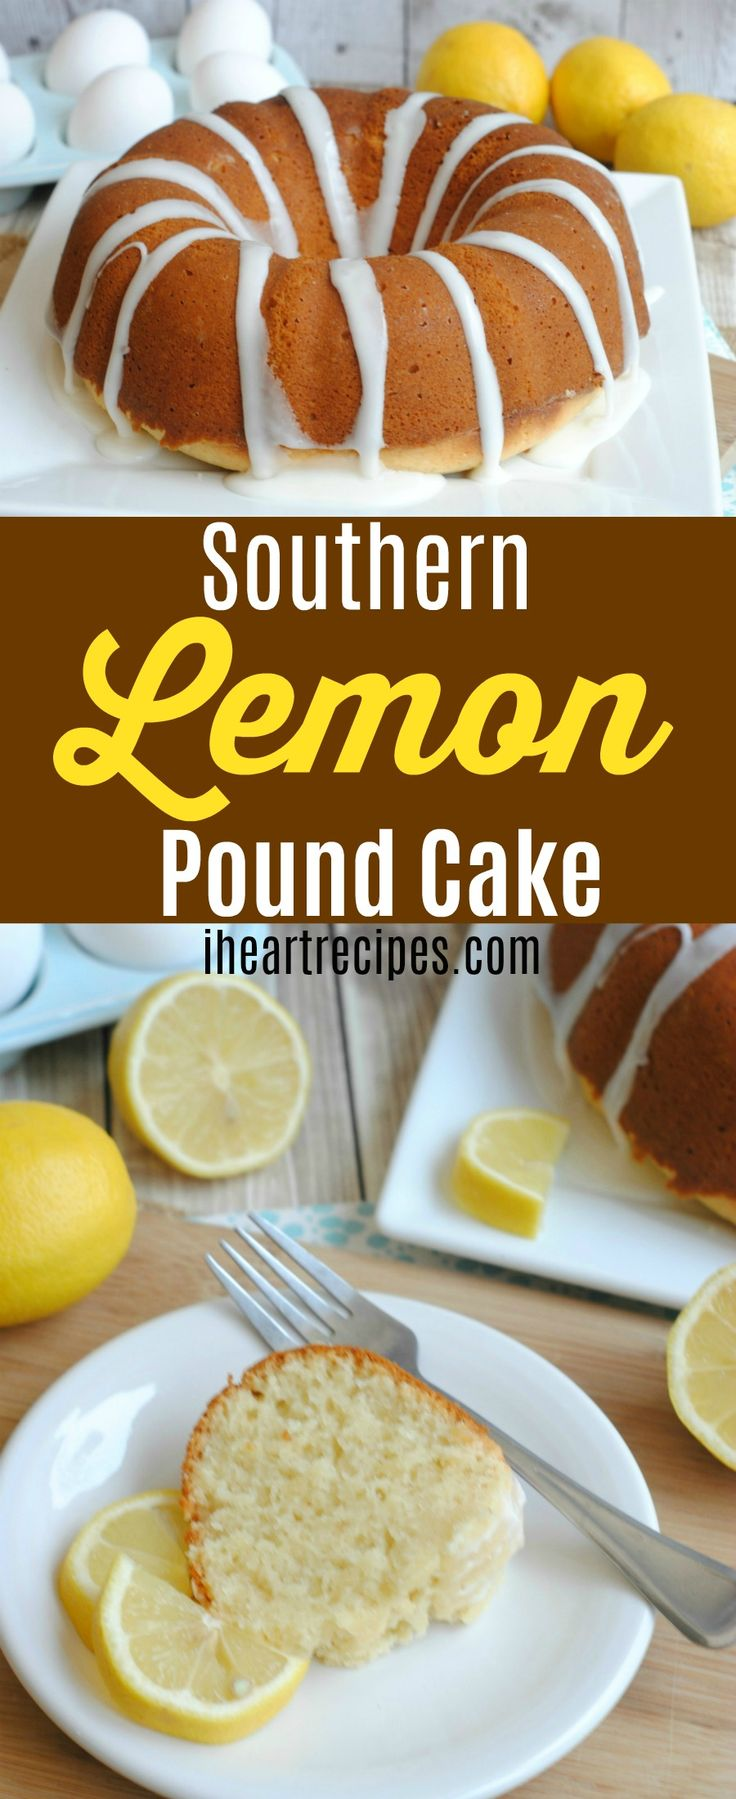 Southern Lemon Pound Cake